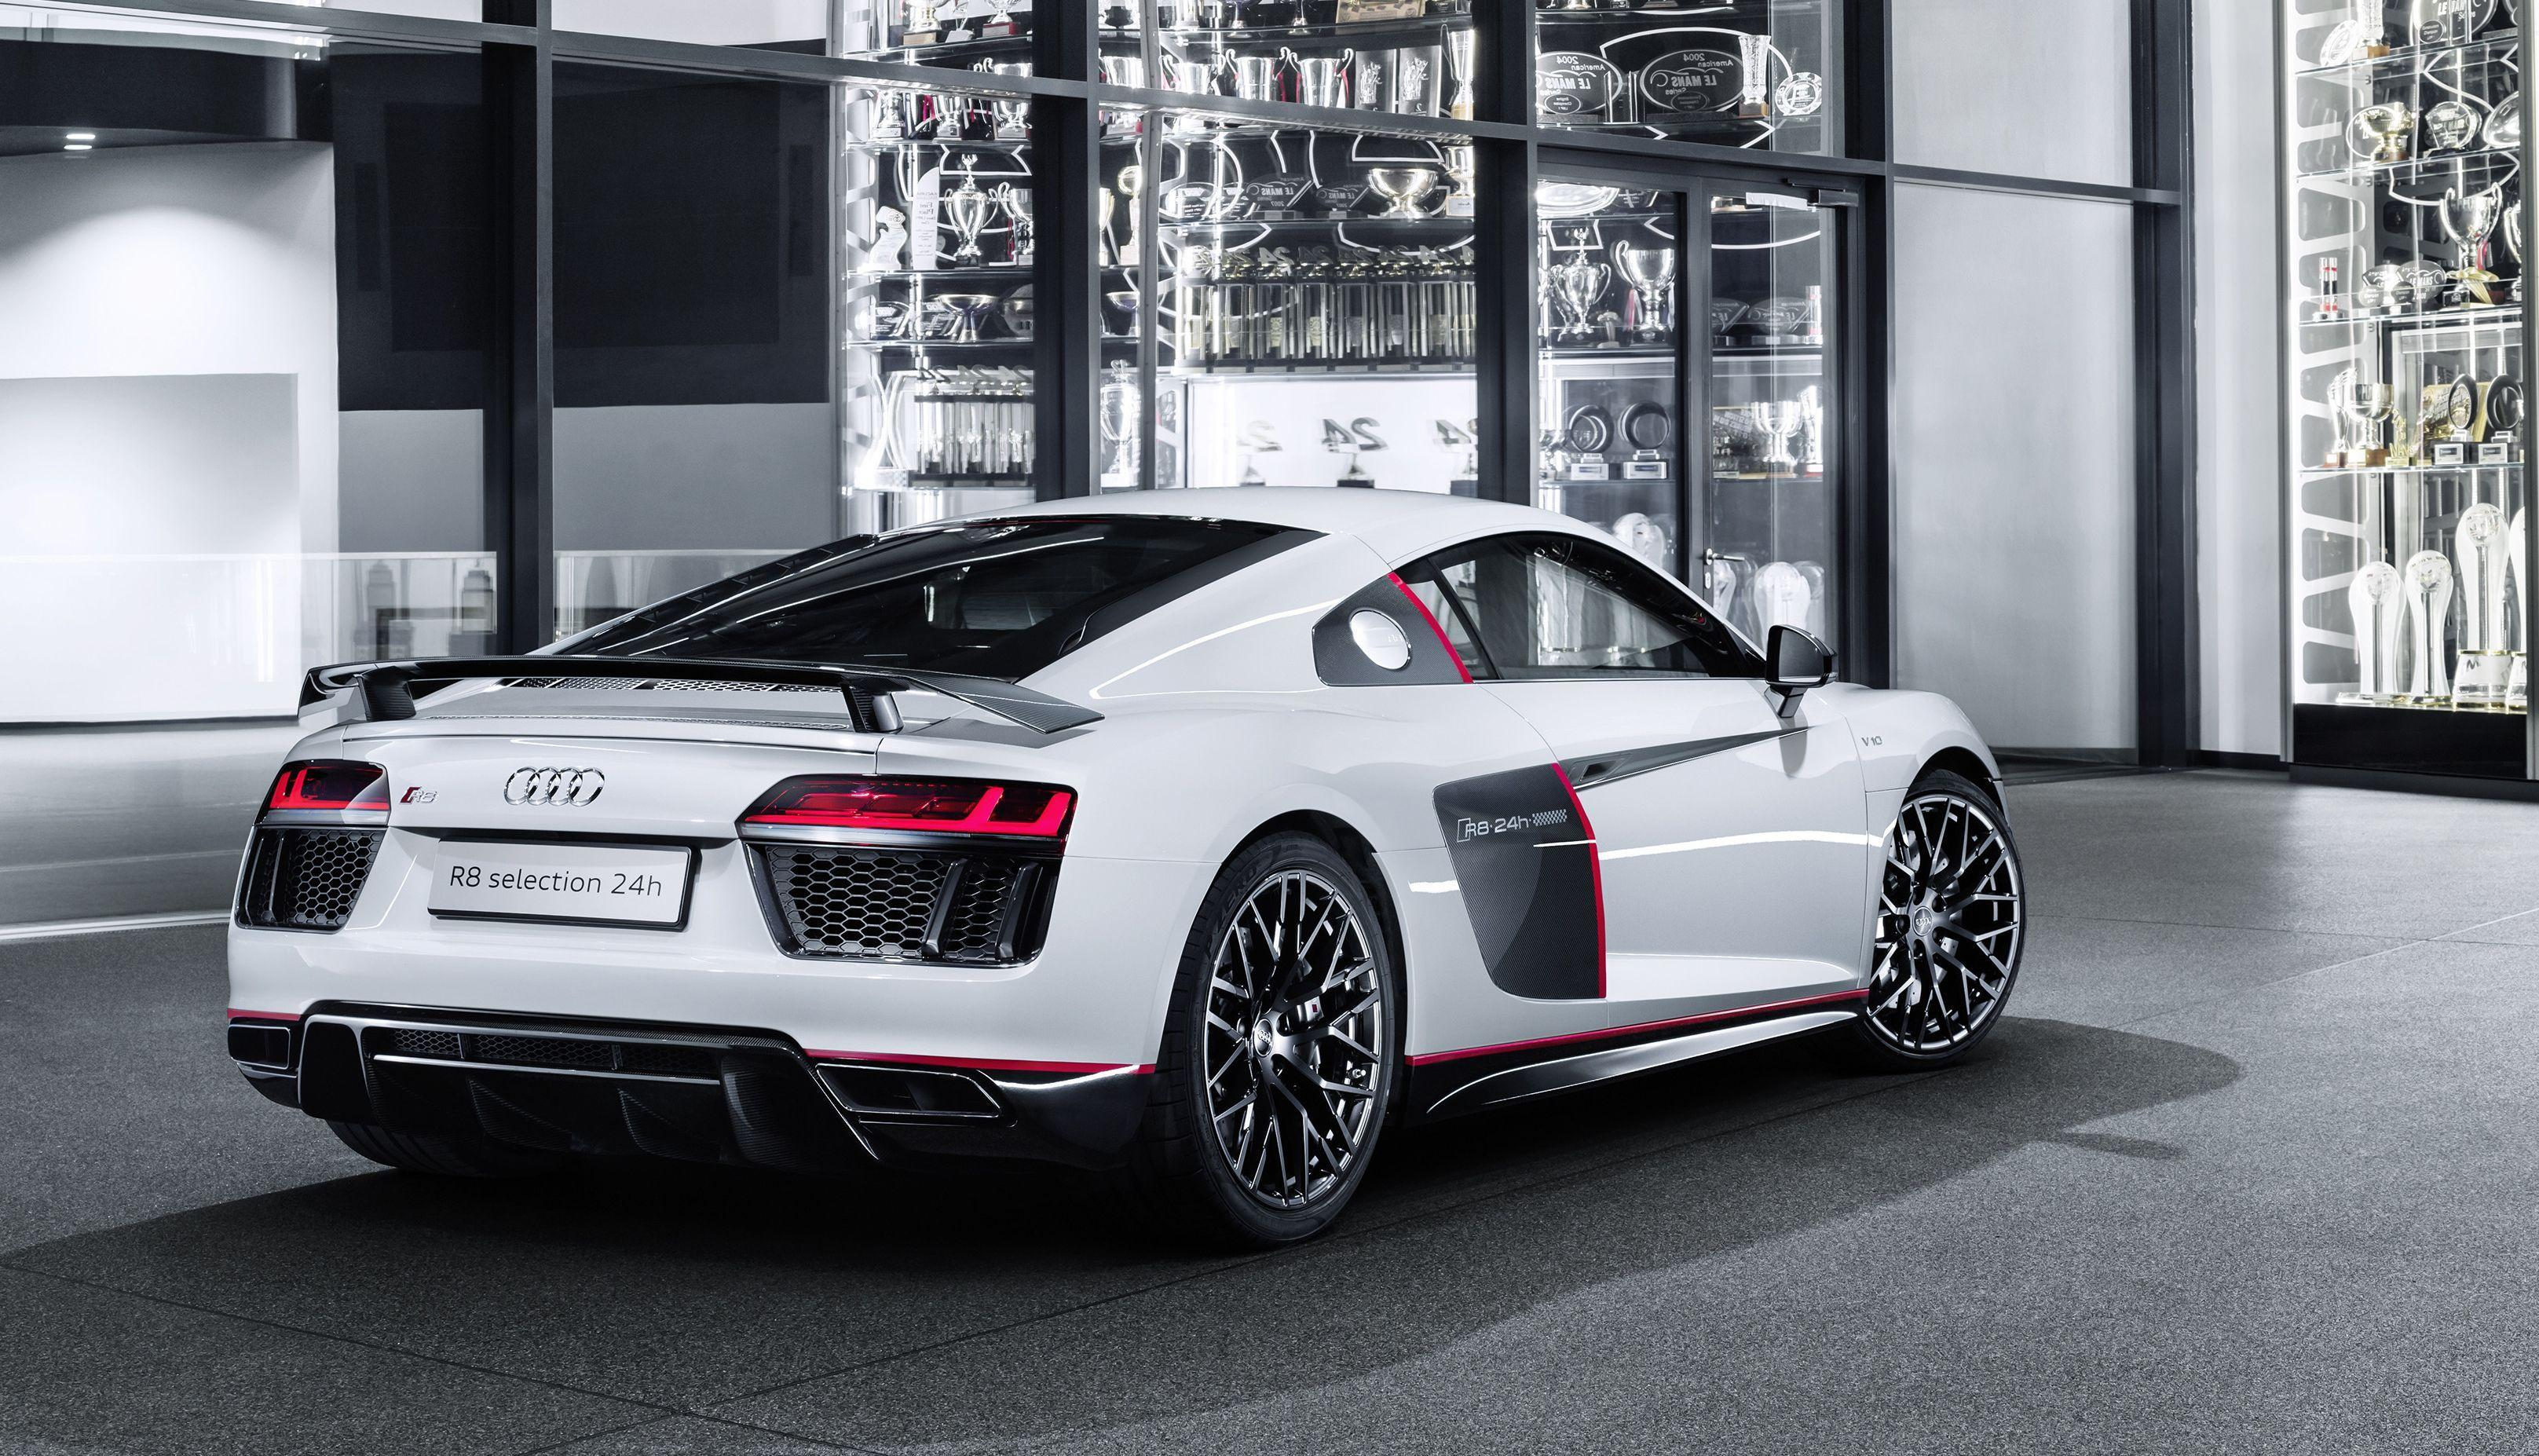 Audi R8 Coupe V10 Plus Selection 24h Edition 2